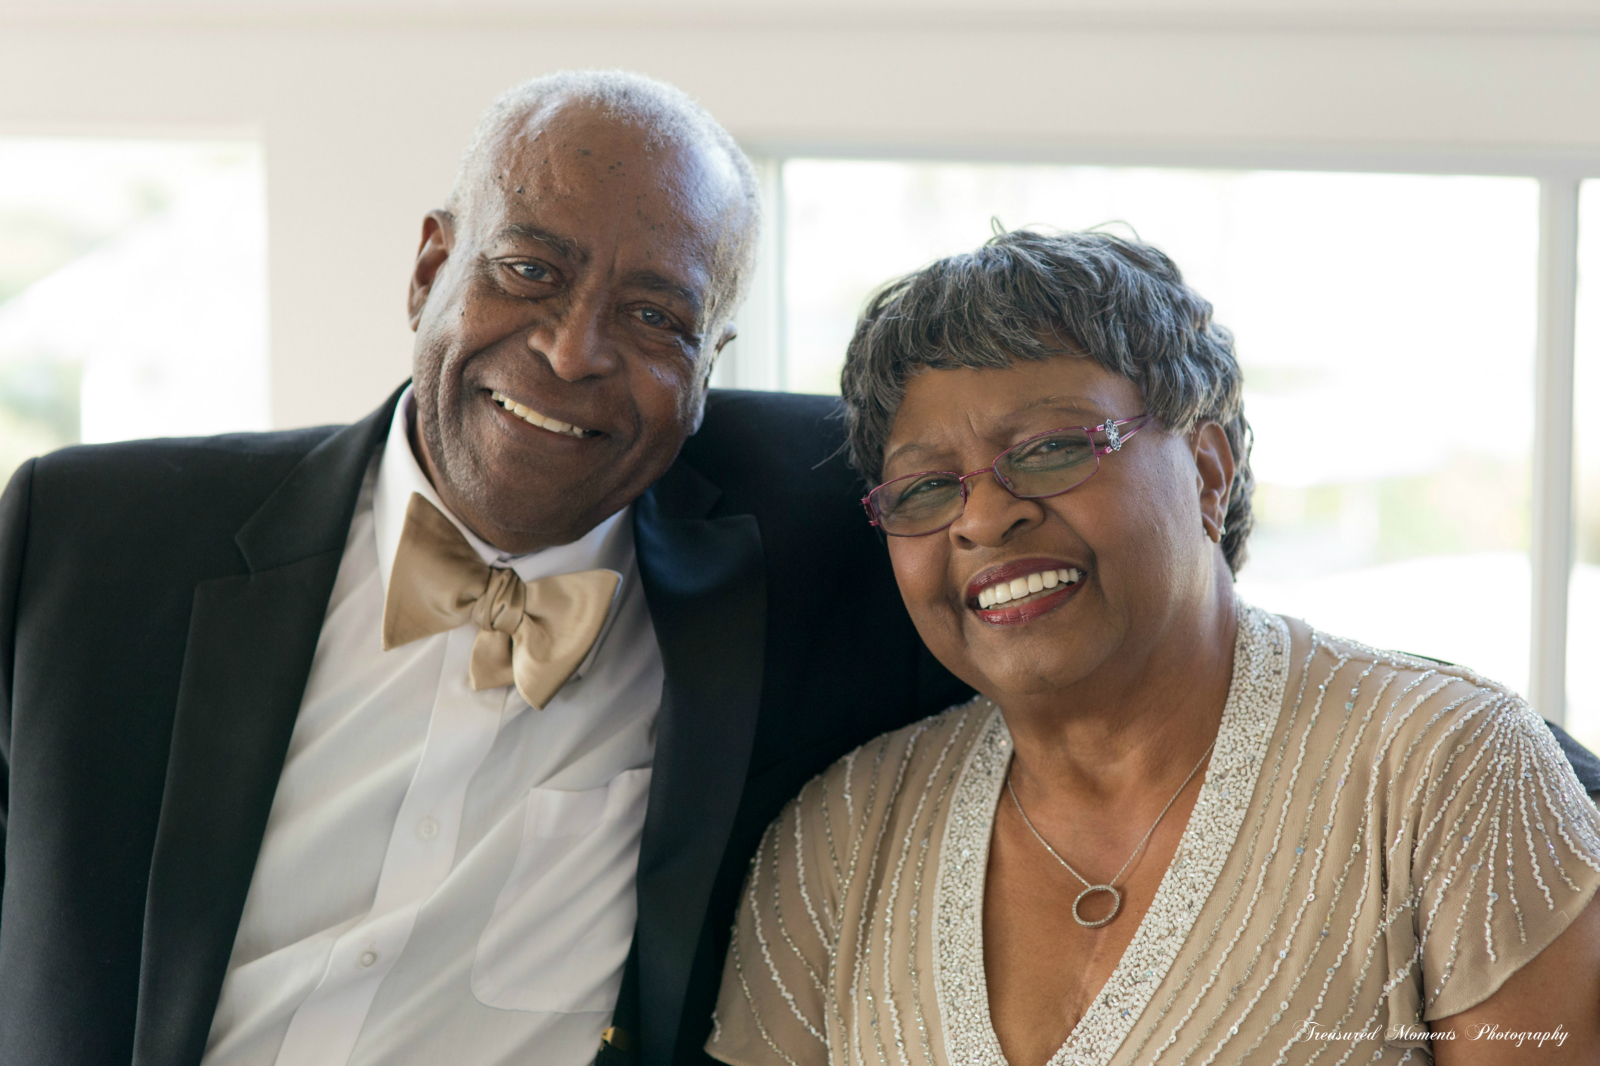 This is Robert and Marva, my longest married couple! 50 years married, staying strong. They are the best role models I've ever met! Thank you! Treasured Moments Photography.